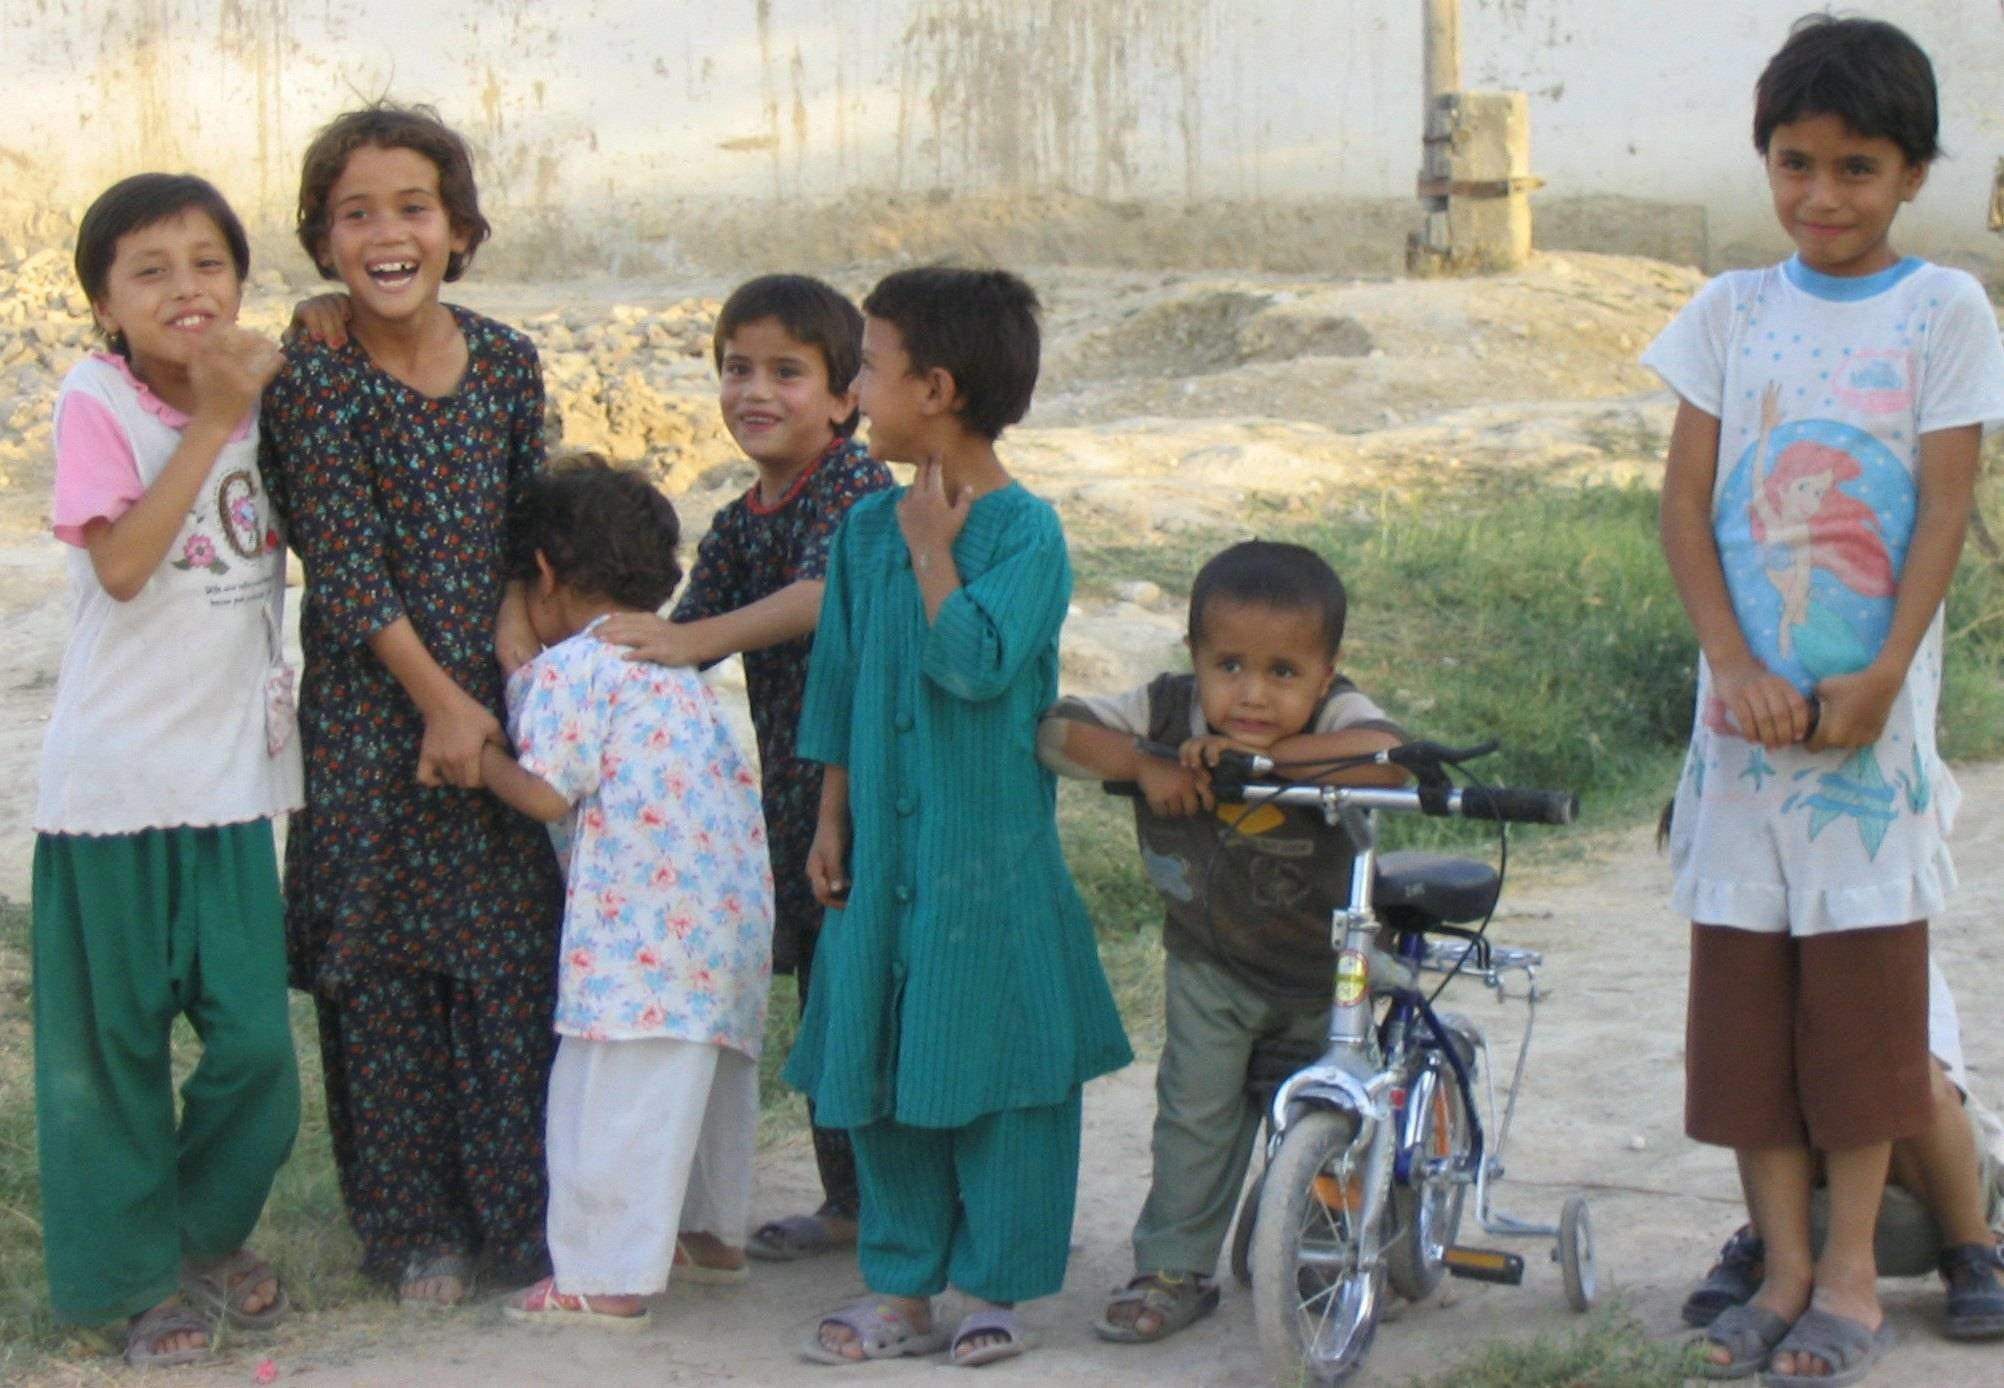 Happy-kids-Afghanistan.jpg